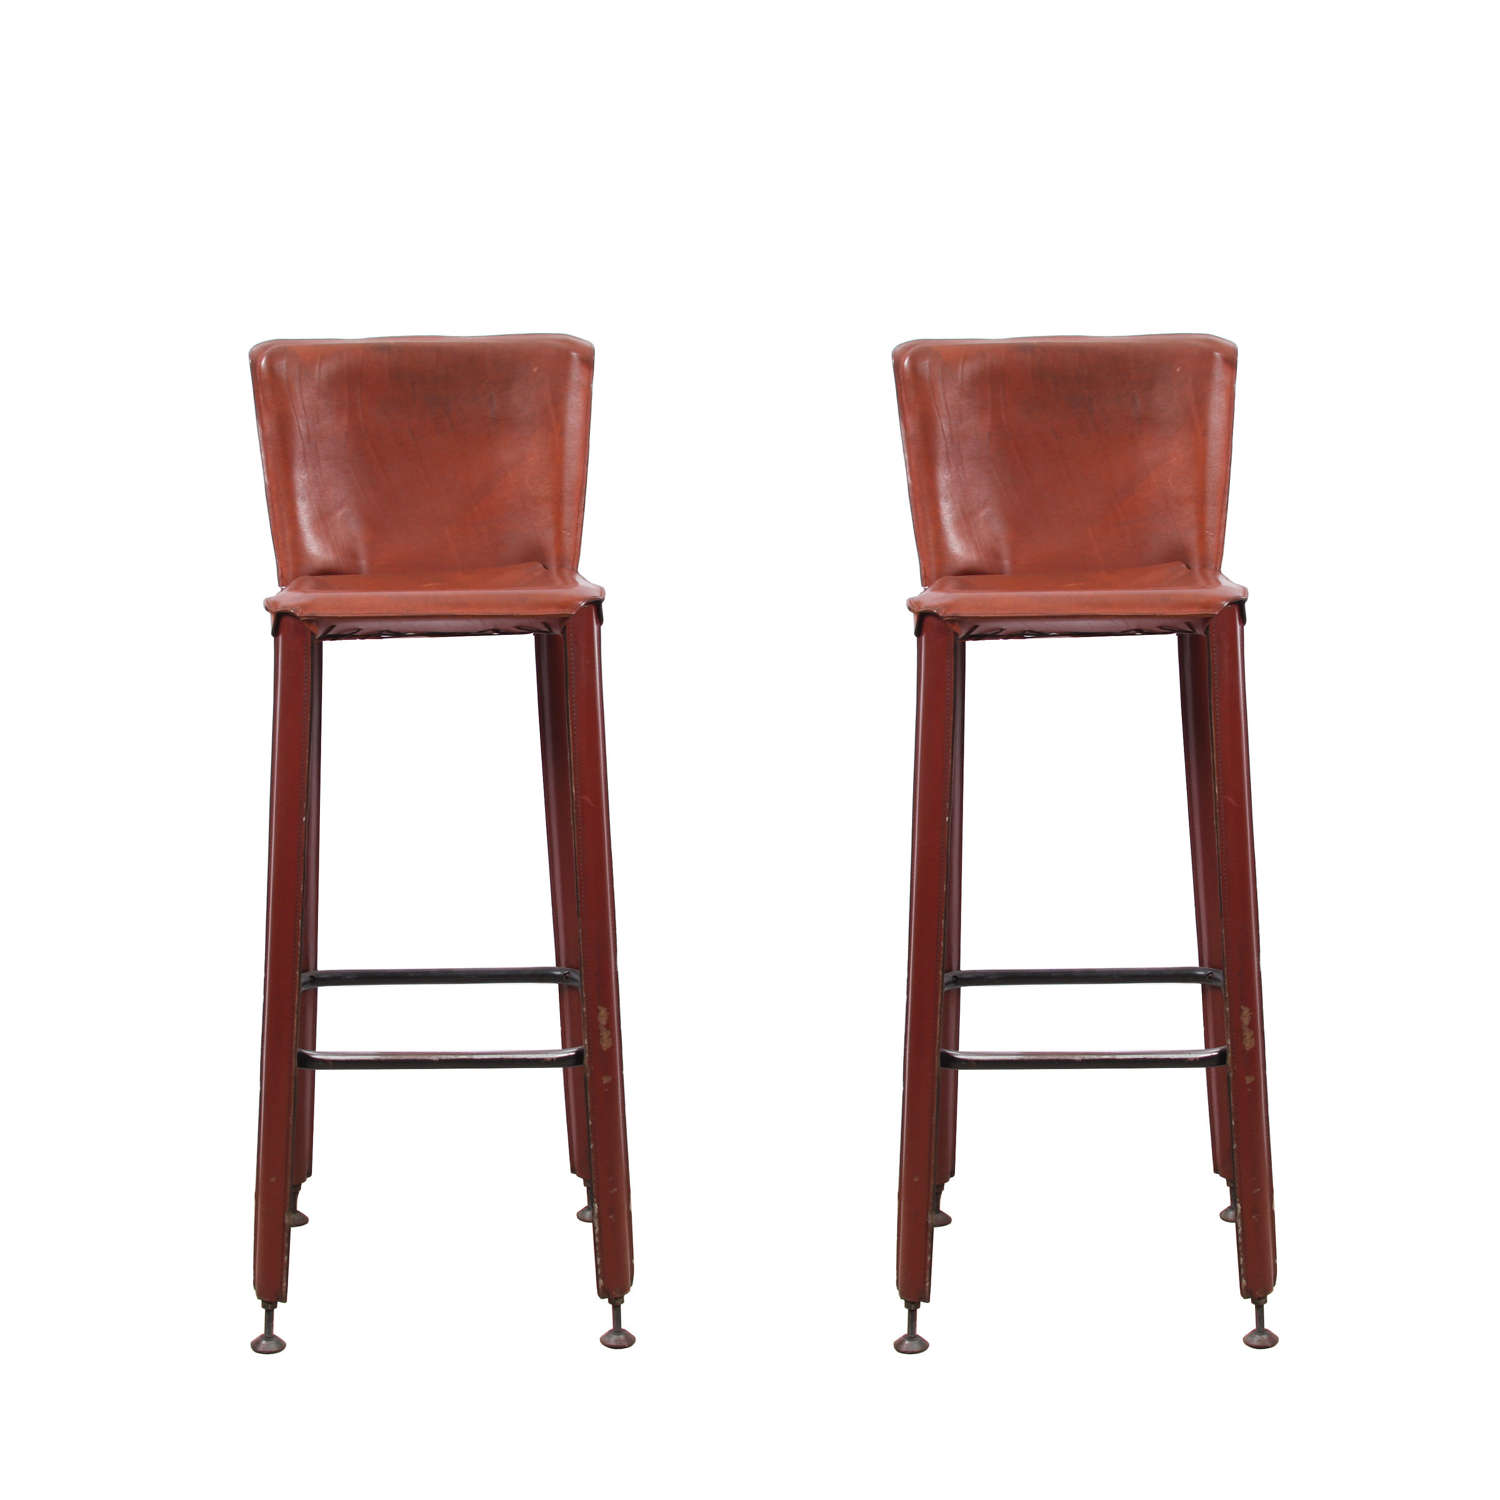 Pair of Mario Bellini Style 1960s Leather Bar Stools